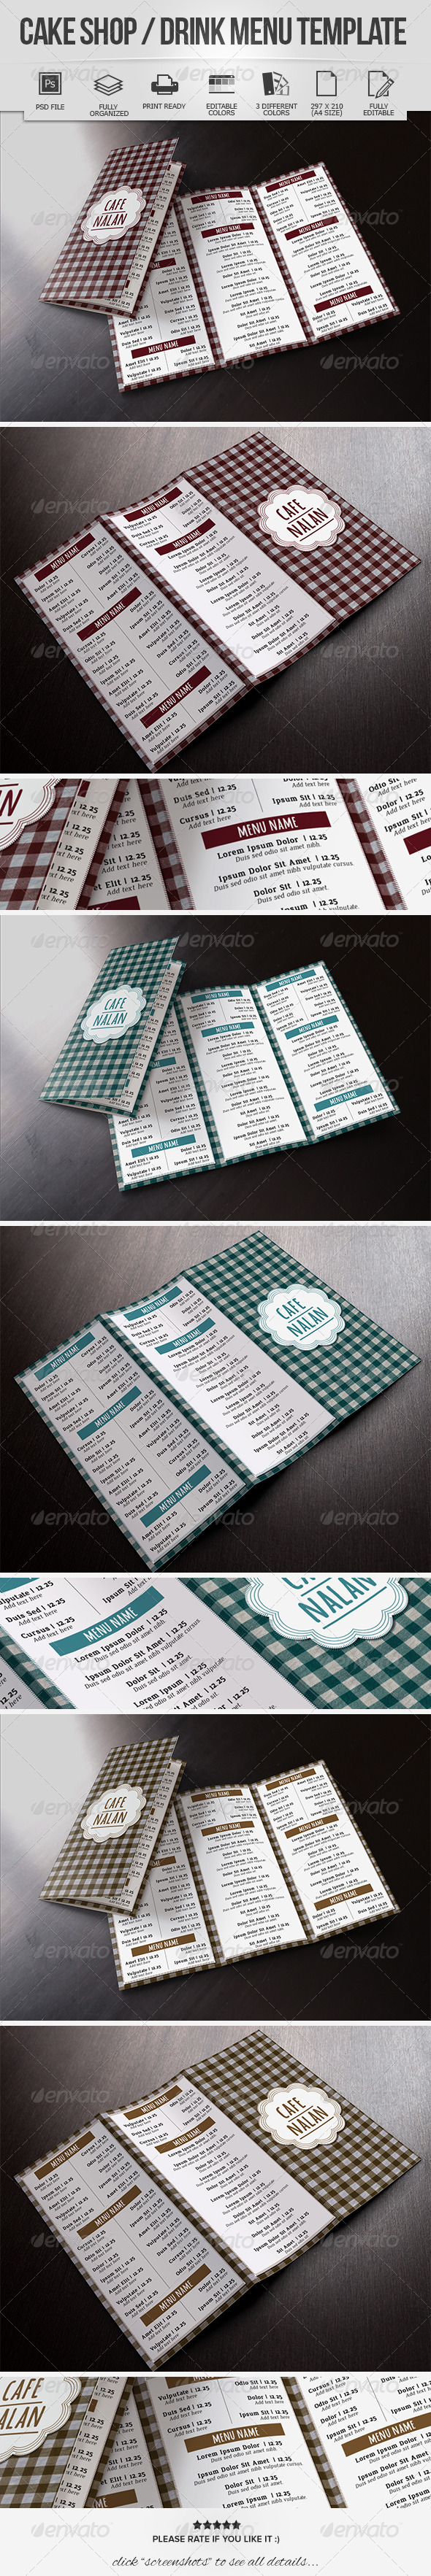 GraphicRiver Cake Shop Drink Menu Template 8329514